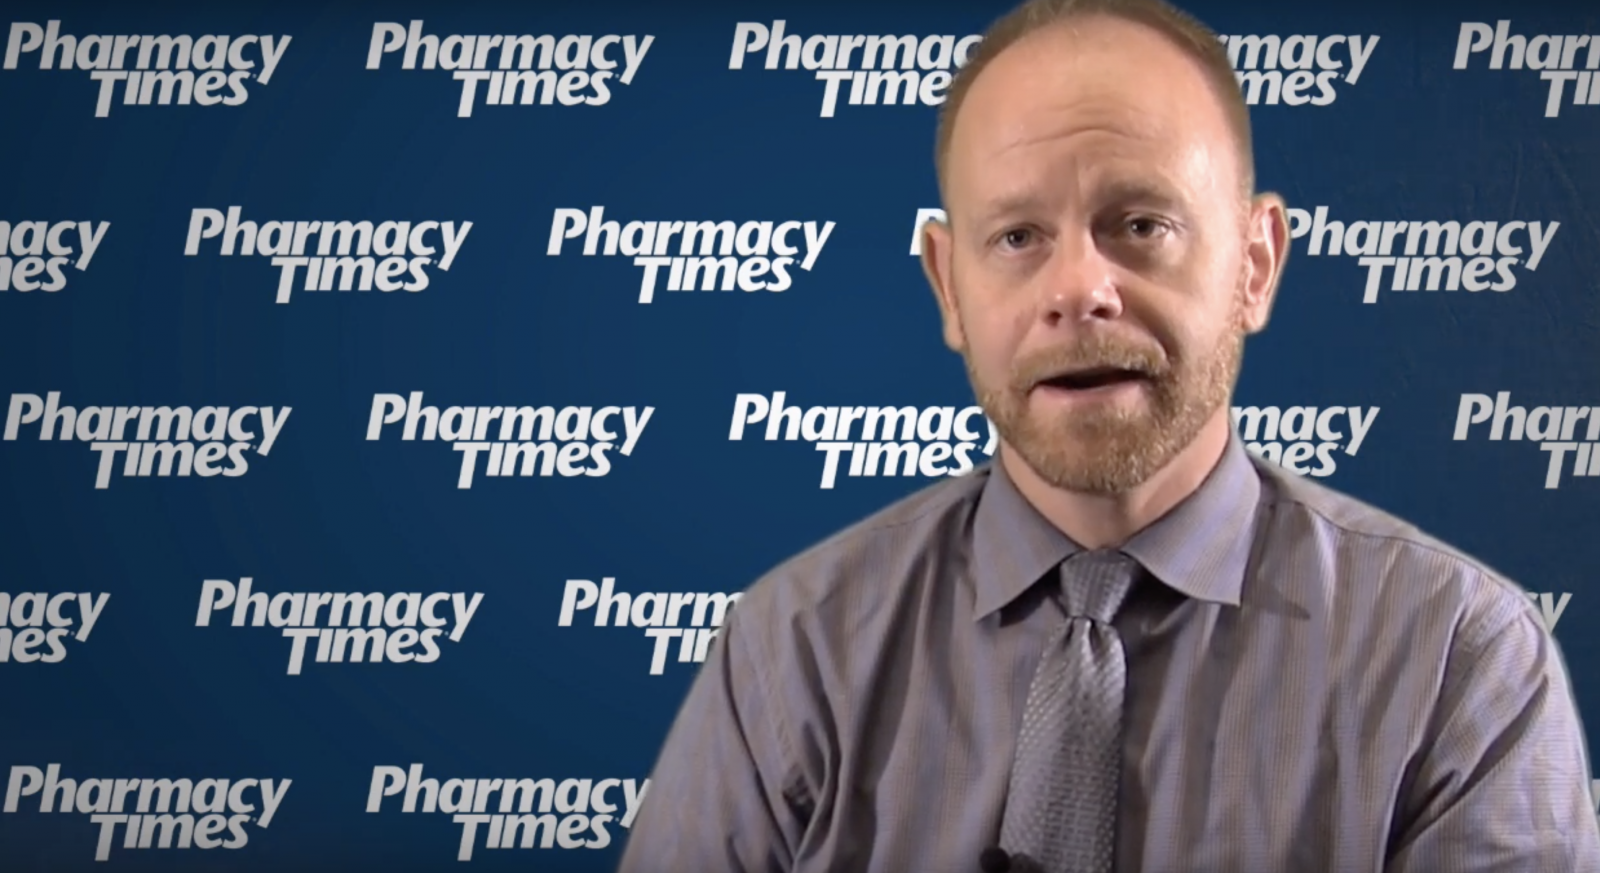 Opportunities for Chain Pharmacies in Preventive Care Services